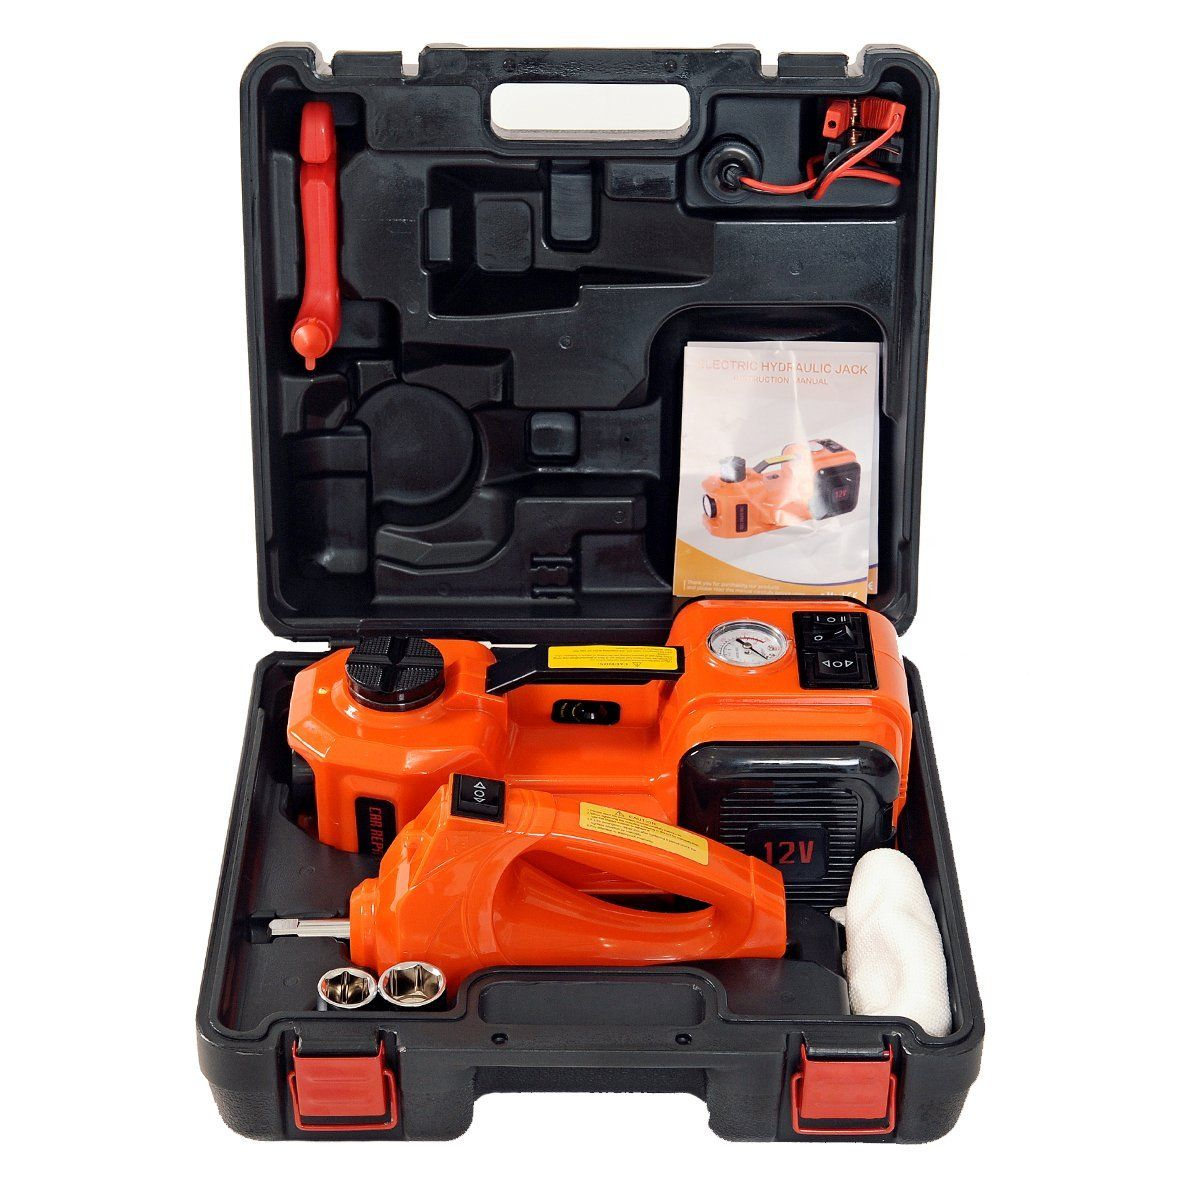 Amazon Car Repair Kit Today Only Sprinkle Savings Car Jack Best Electric Car Hydraulic Cars